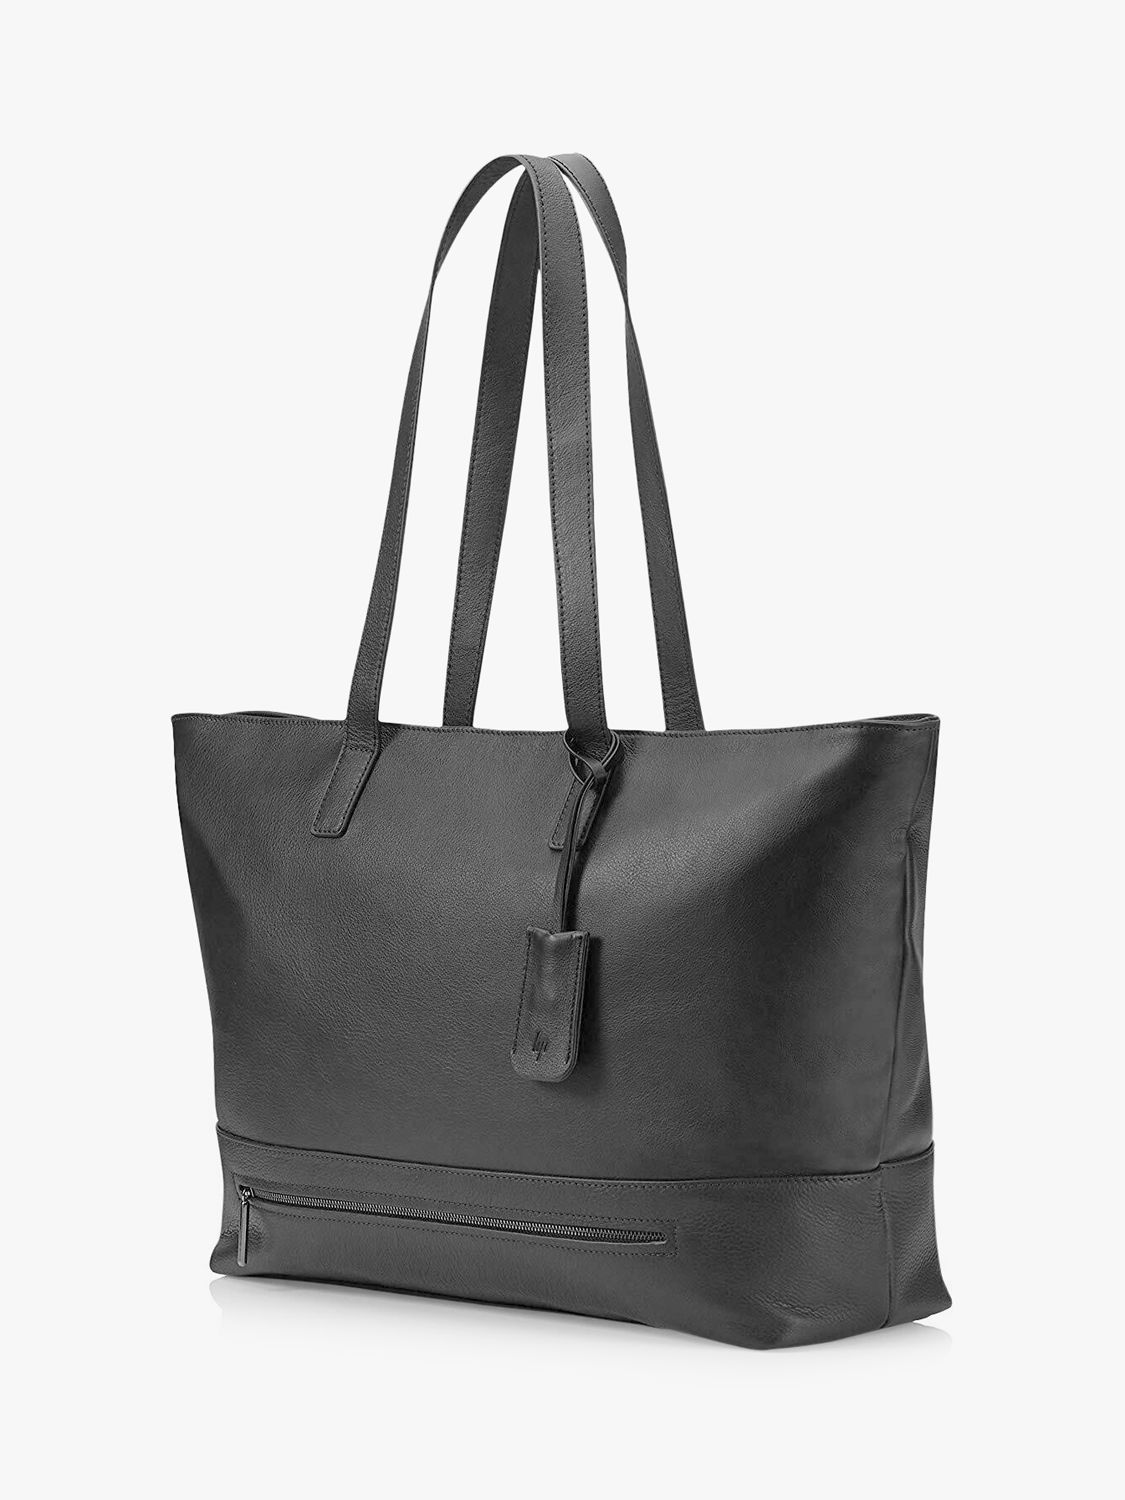 HP HP Spectre Tote Bag for Laptops up to 17.3, Black